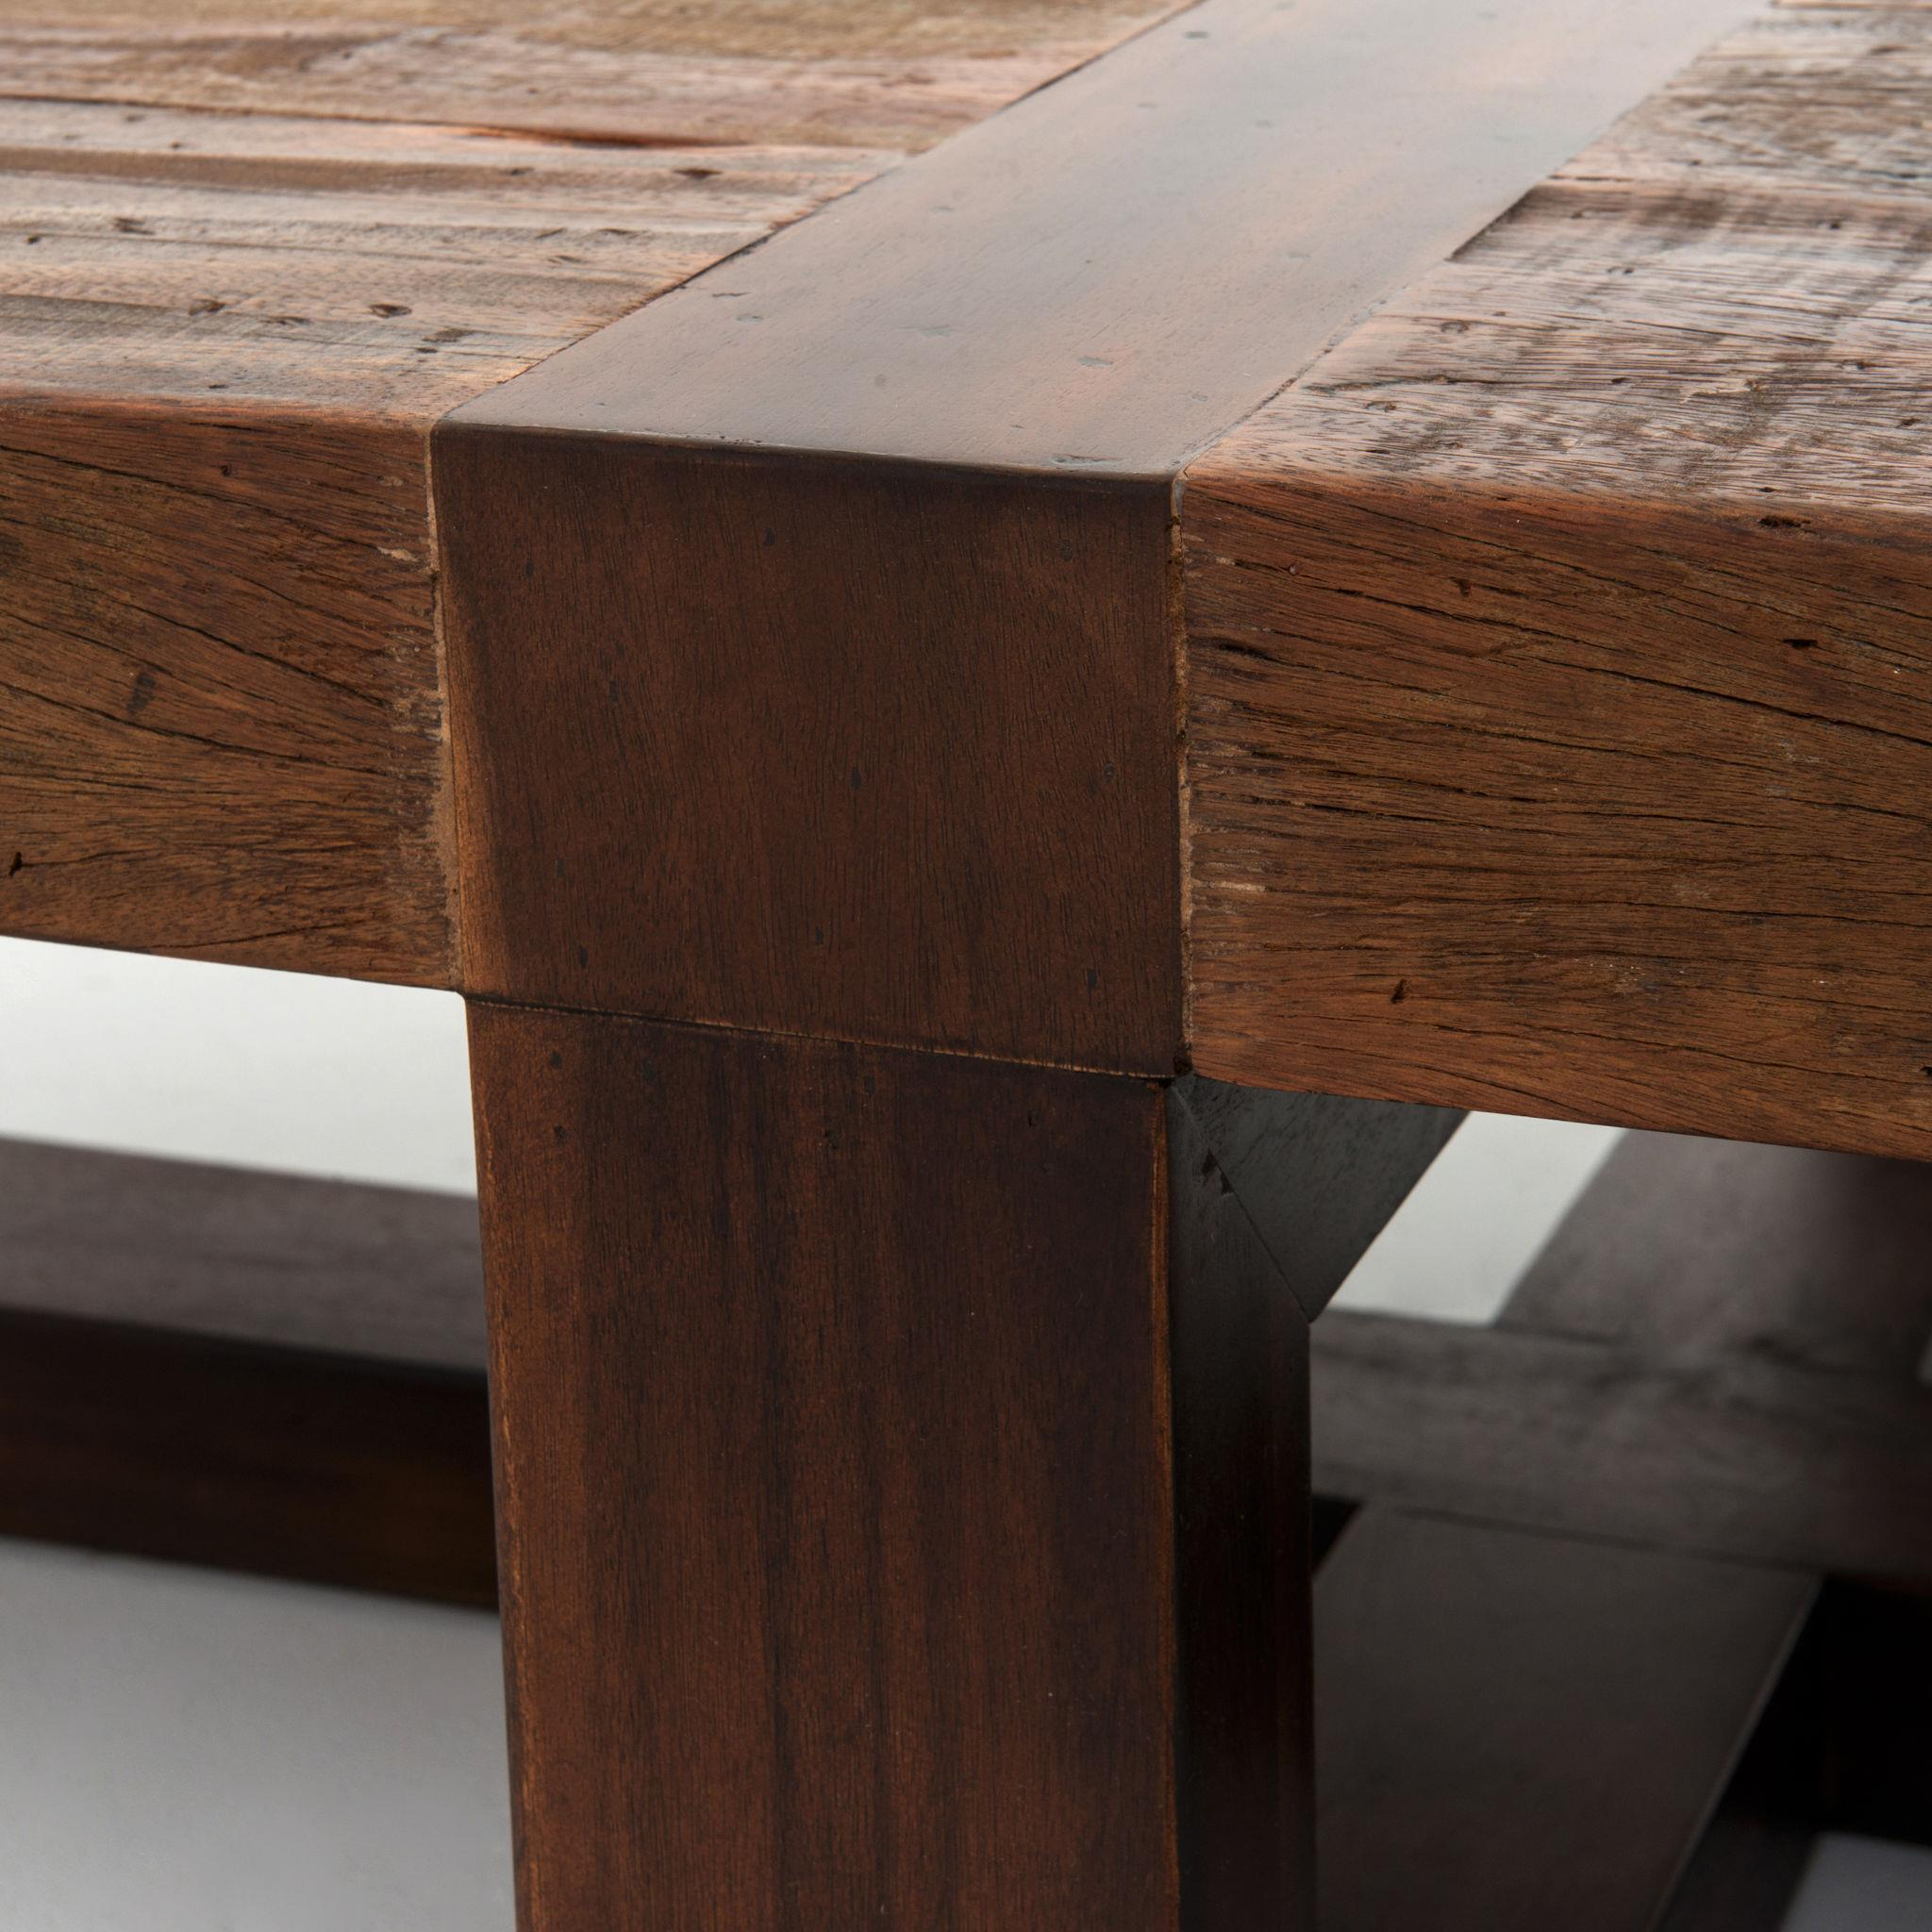 Reclaimed Bryan Coffee Table by Four Hands